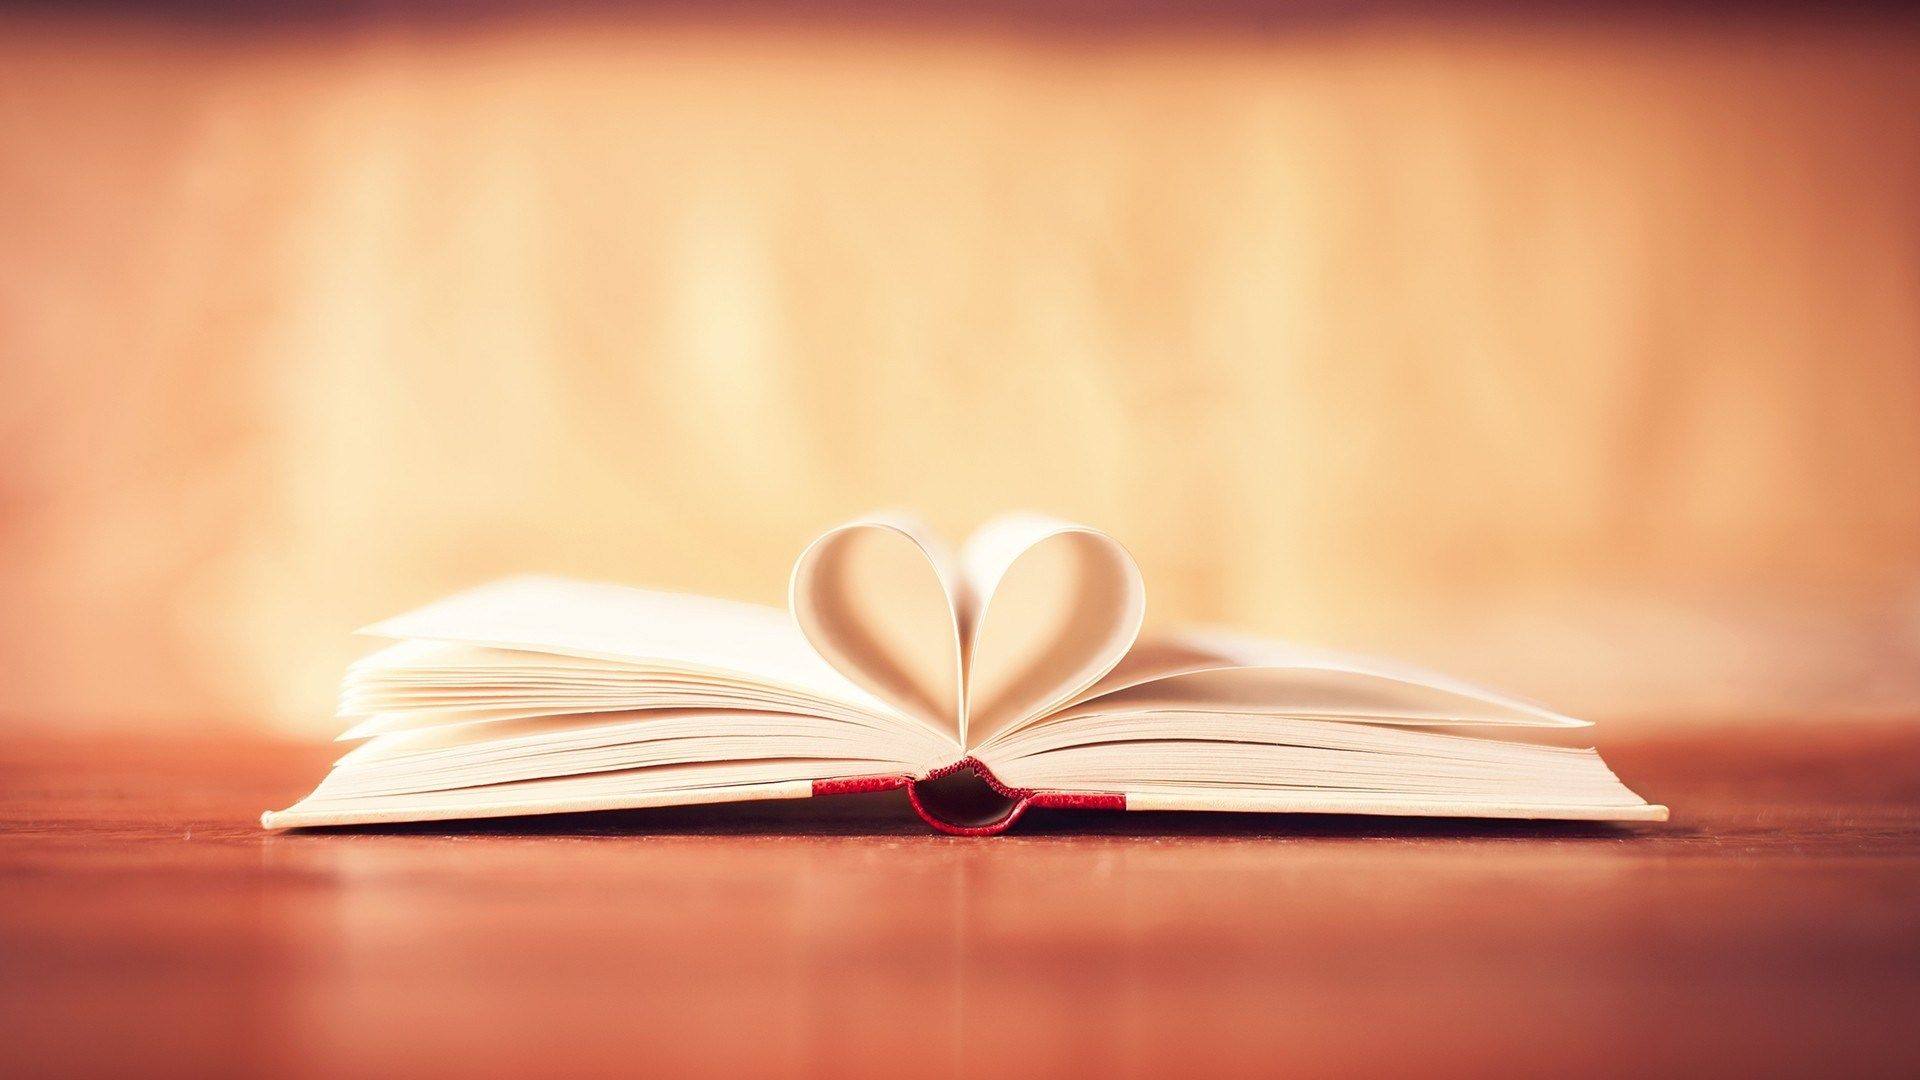 book picture - background hd - book category | gogolmogol